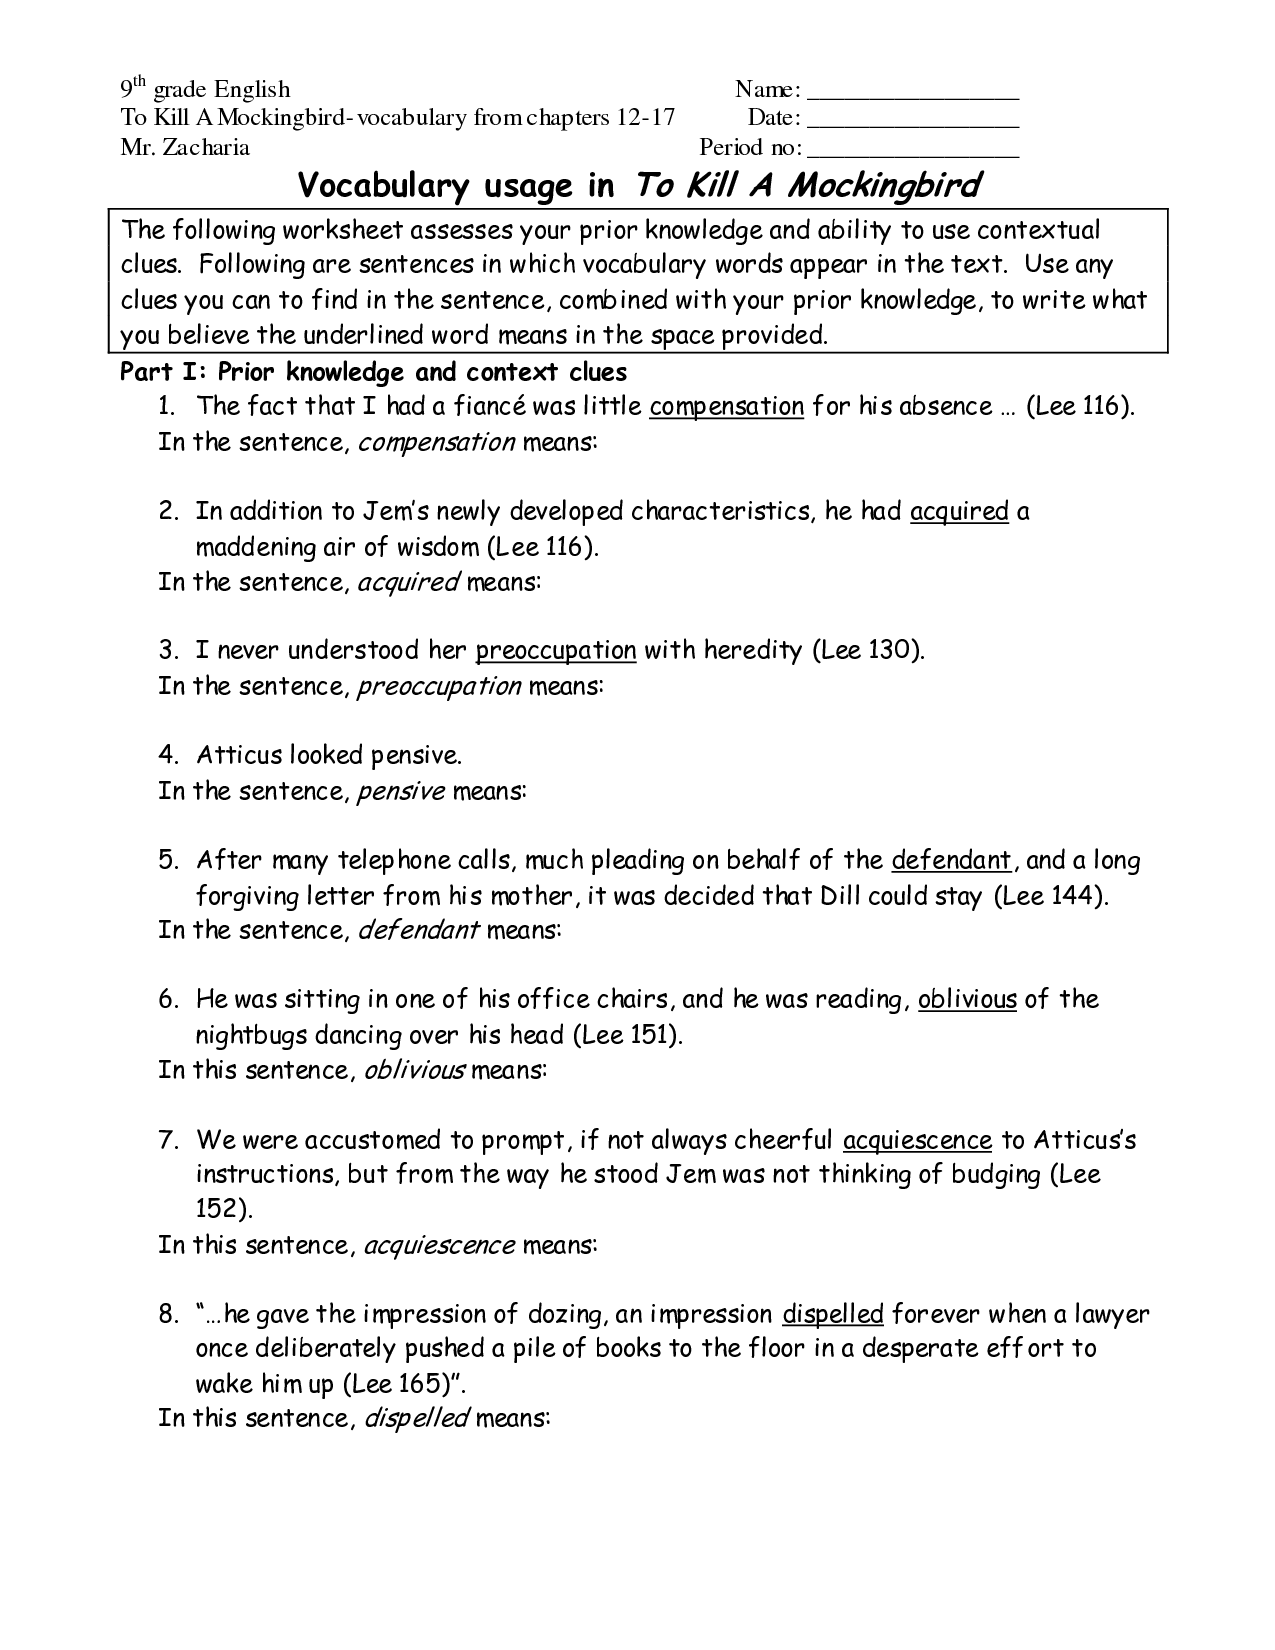 9th Grade Worksheet Category Page 2